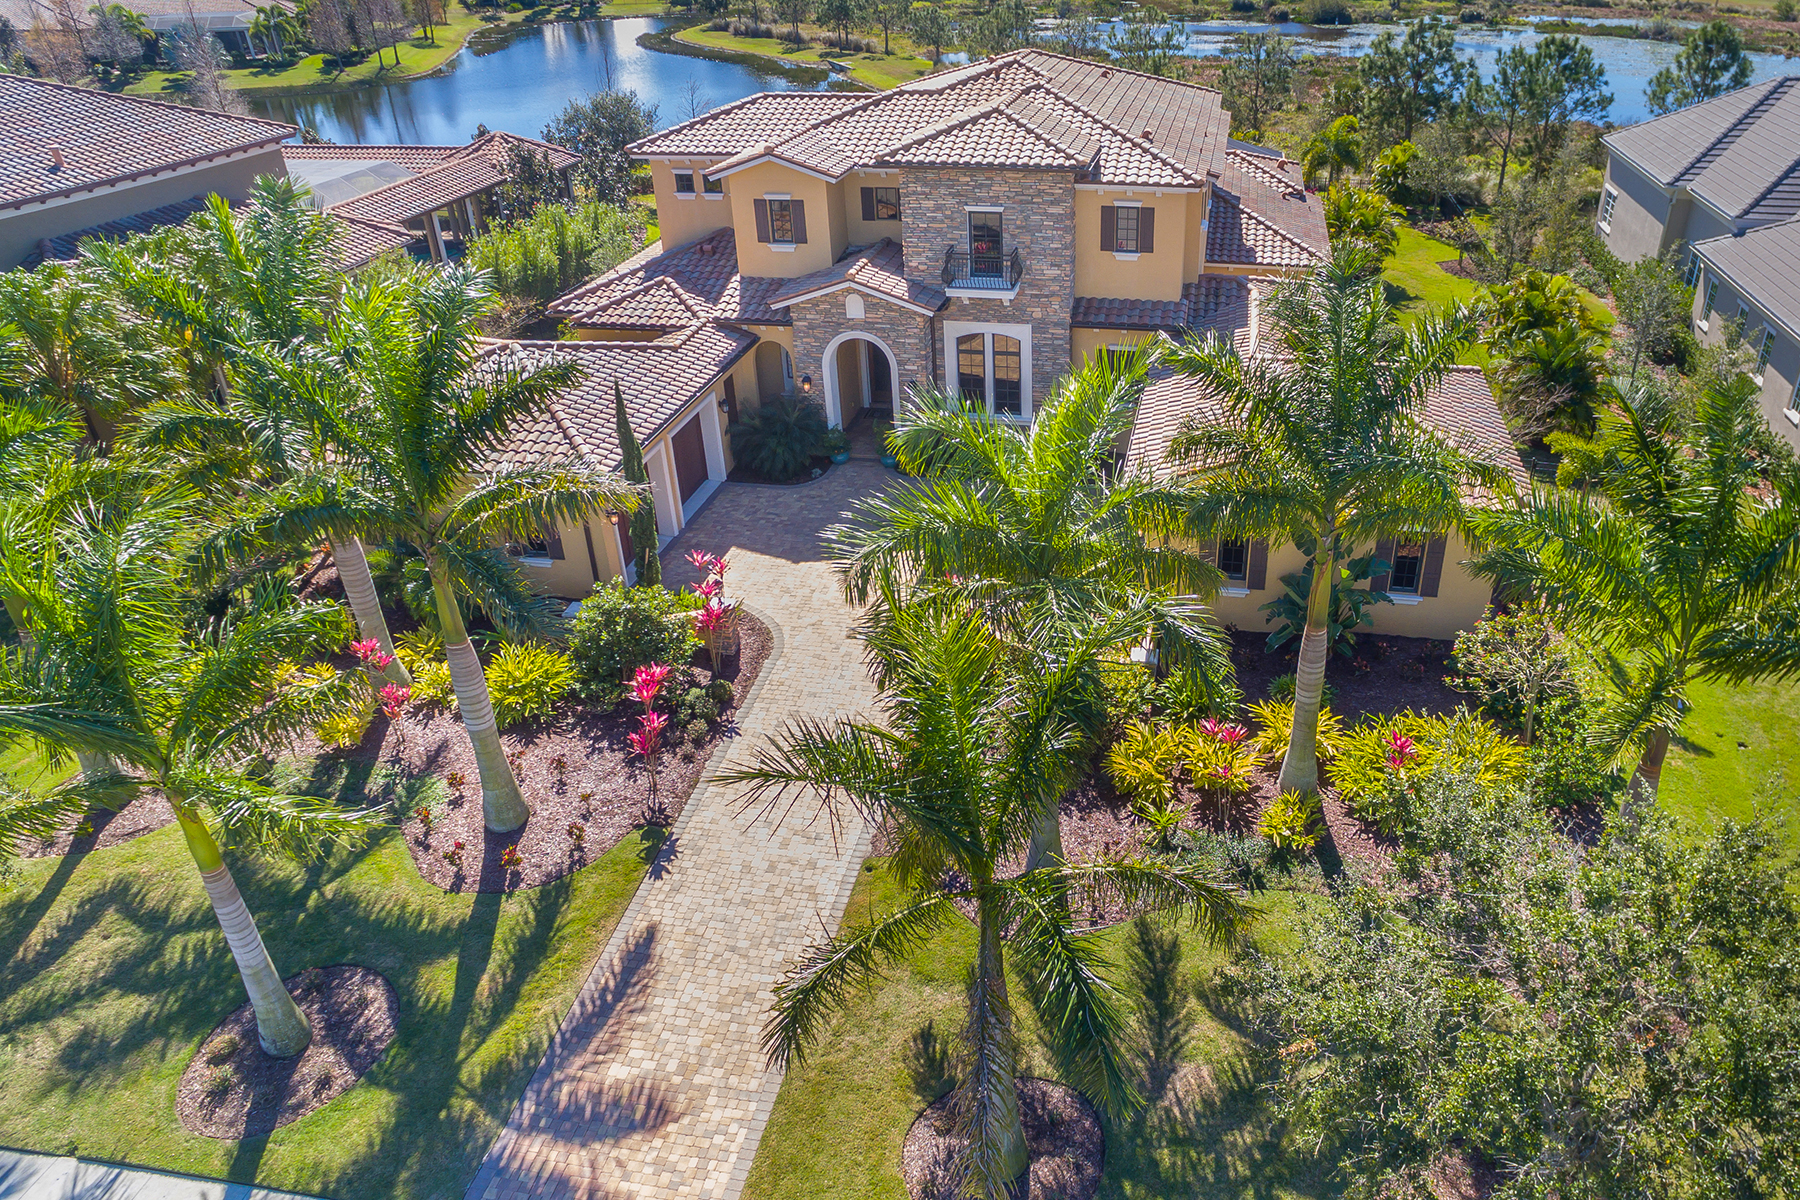 Single Family Home for Sale at THE LAKE CLUB 16116 Clearlake Ave, Lakewood Ranch, Florida 34202 United States